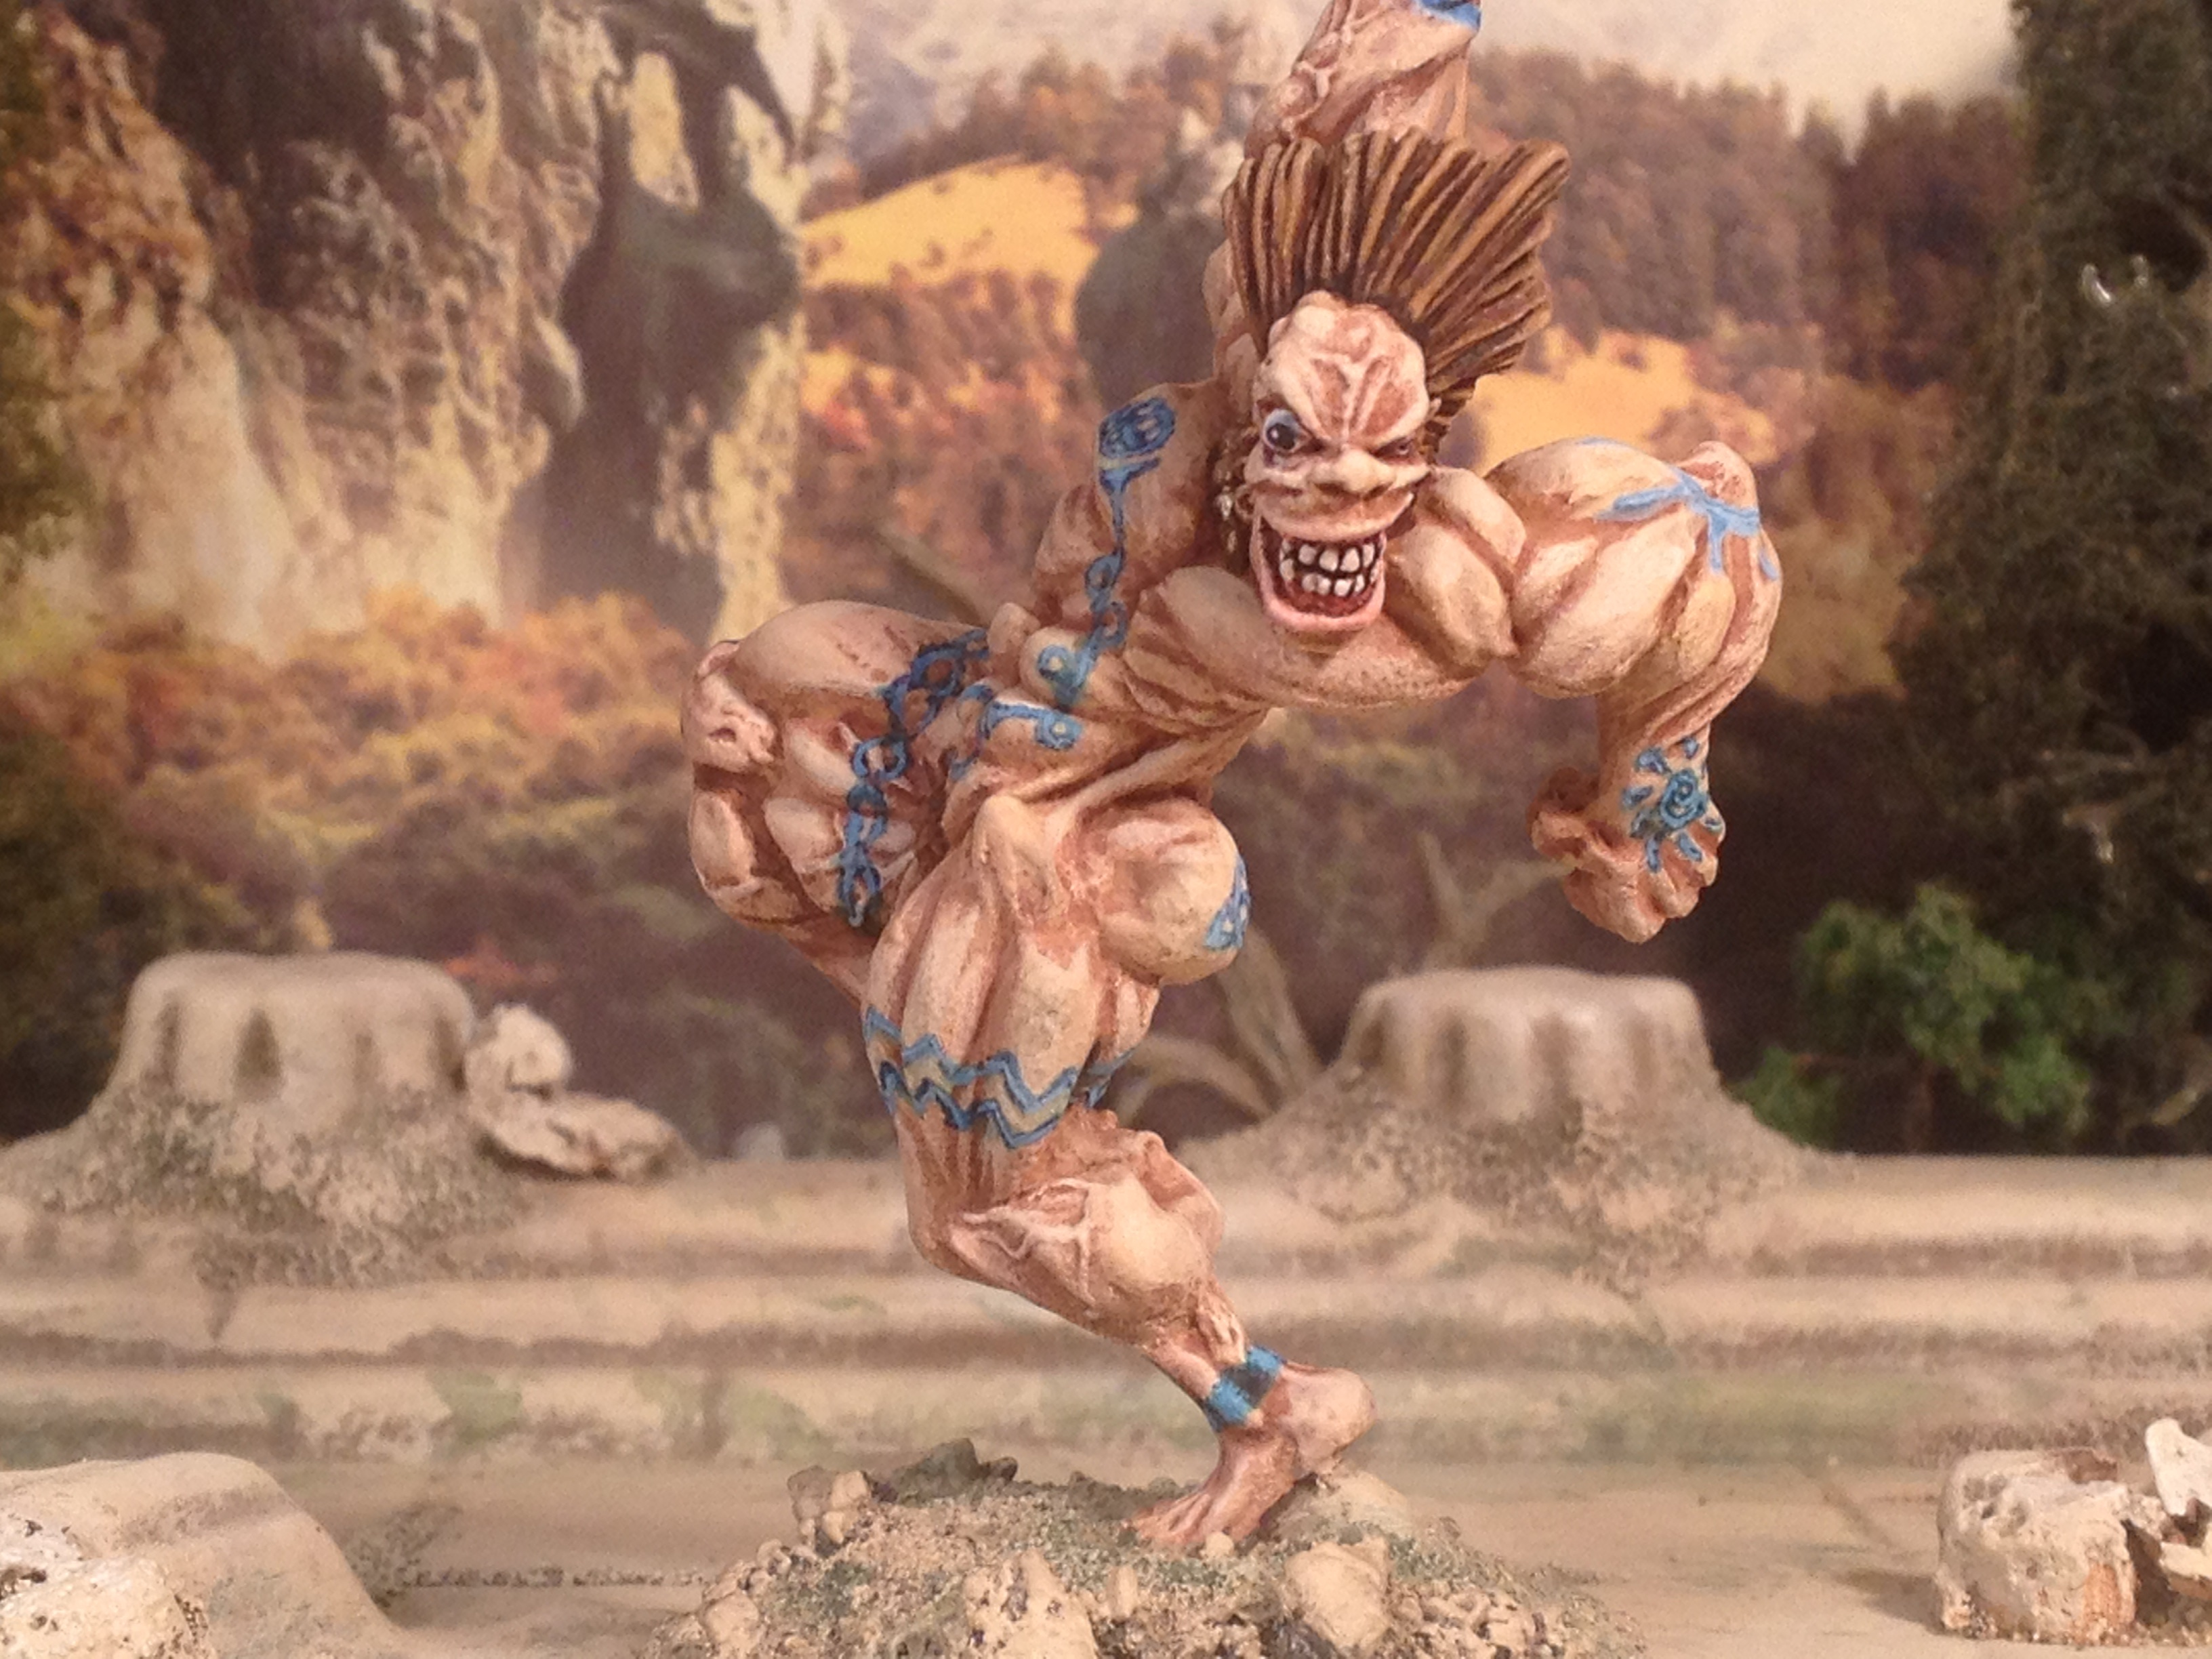 Wargames Foundry SLaine in Spasm beserk mode as Crom Cruach